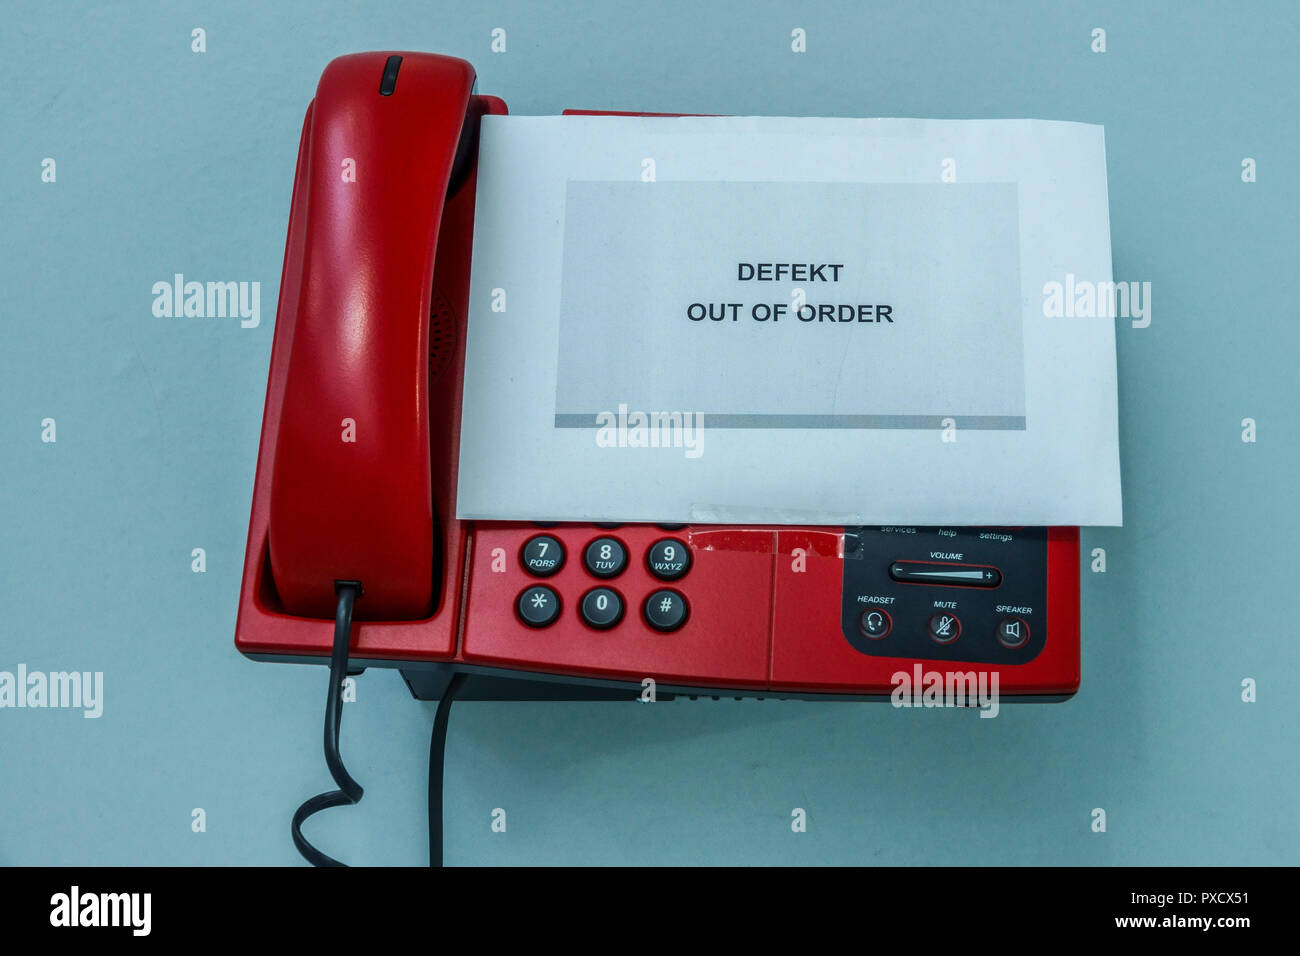 Telephone with keypad out of order, defect - Stock Image